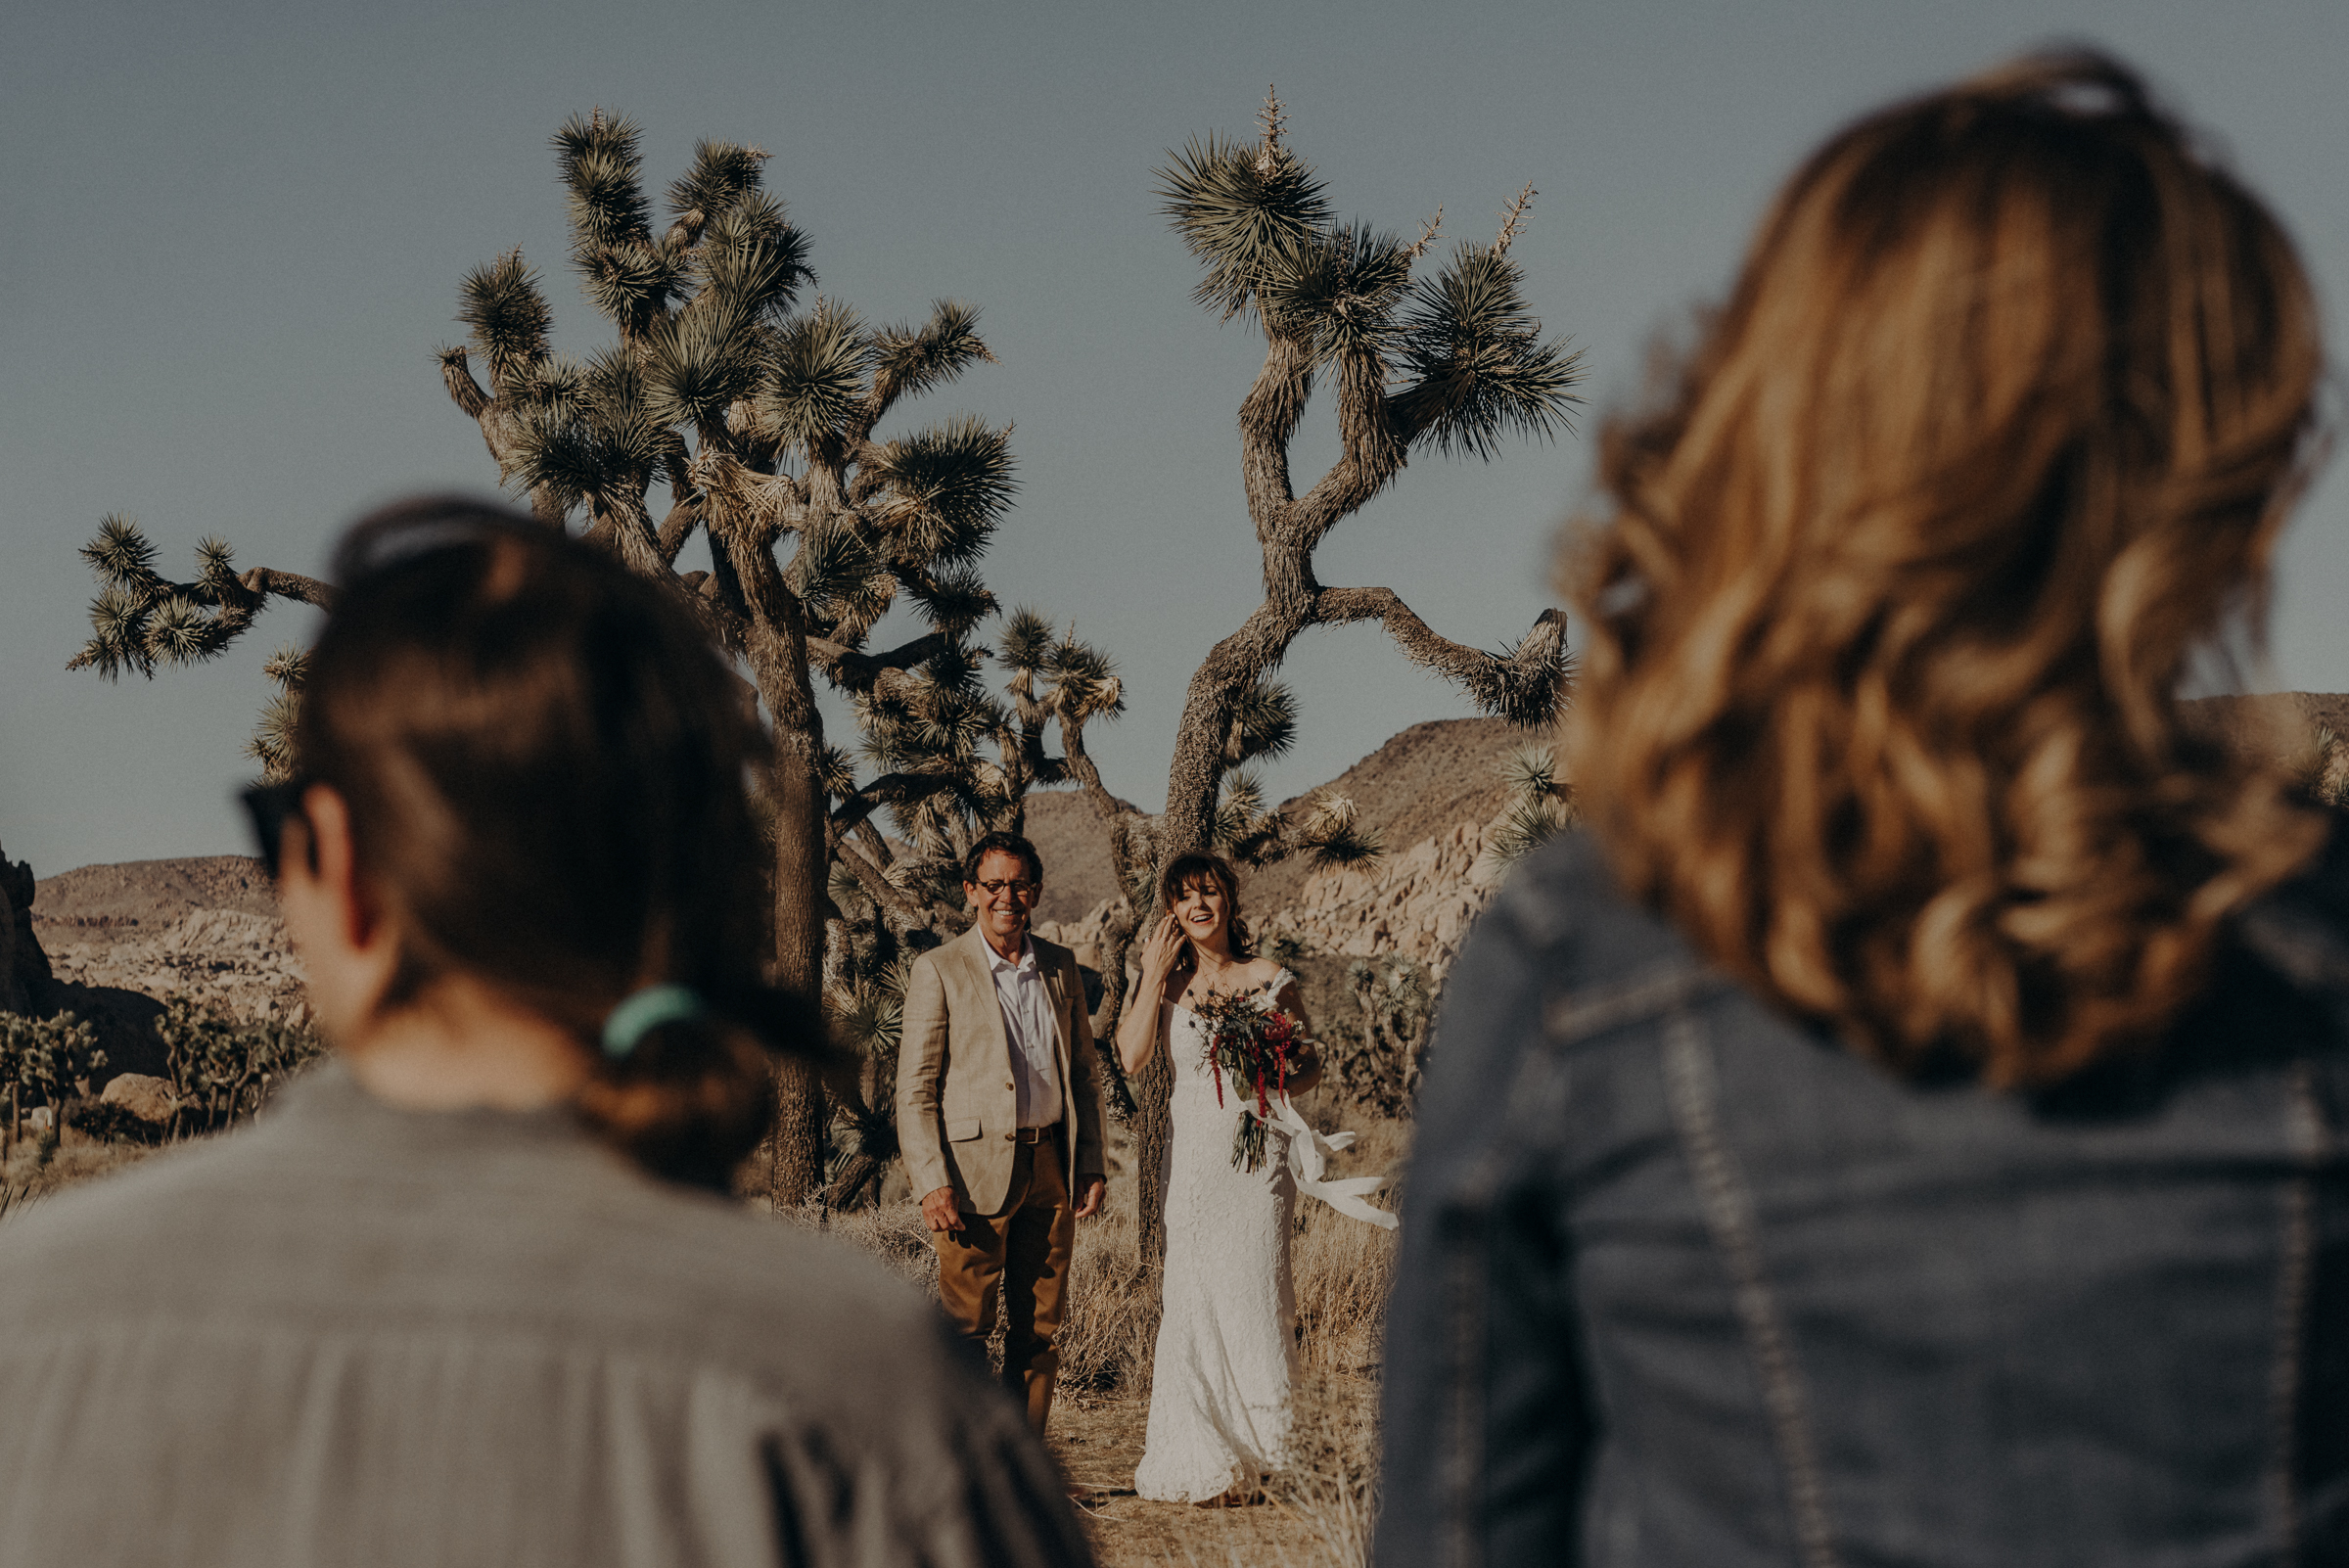 Joshua Tree Elopement - Los Angeles Wedding Photographers - IsaiahAndTaylor.com-017.jpg